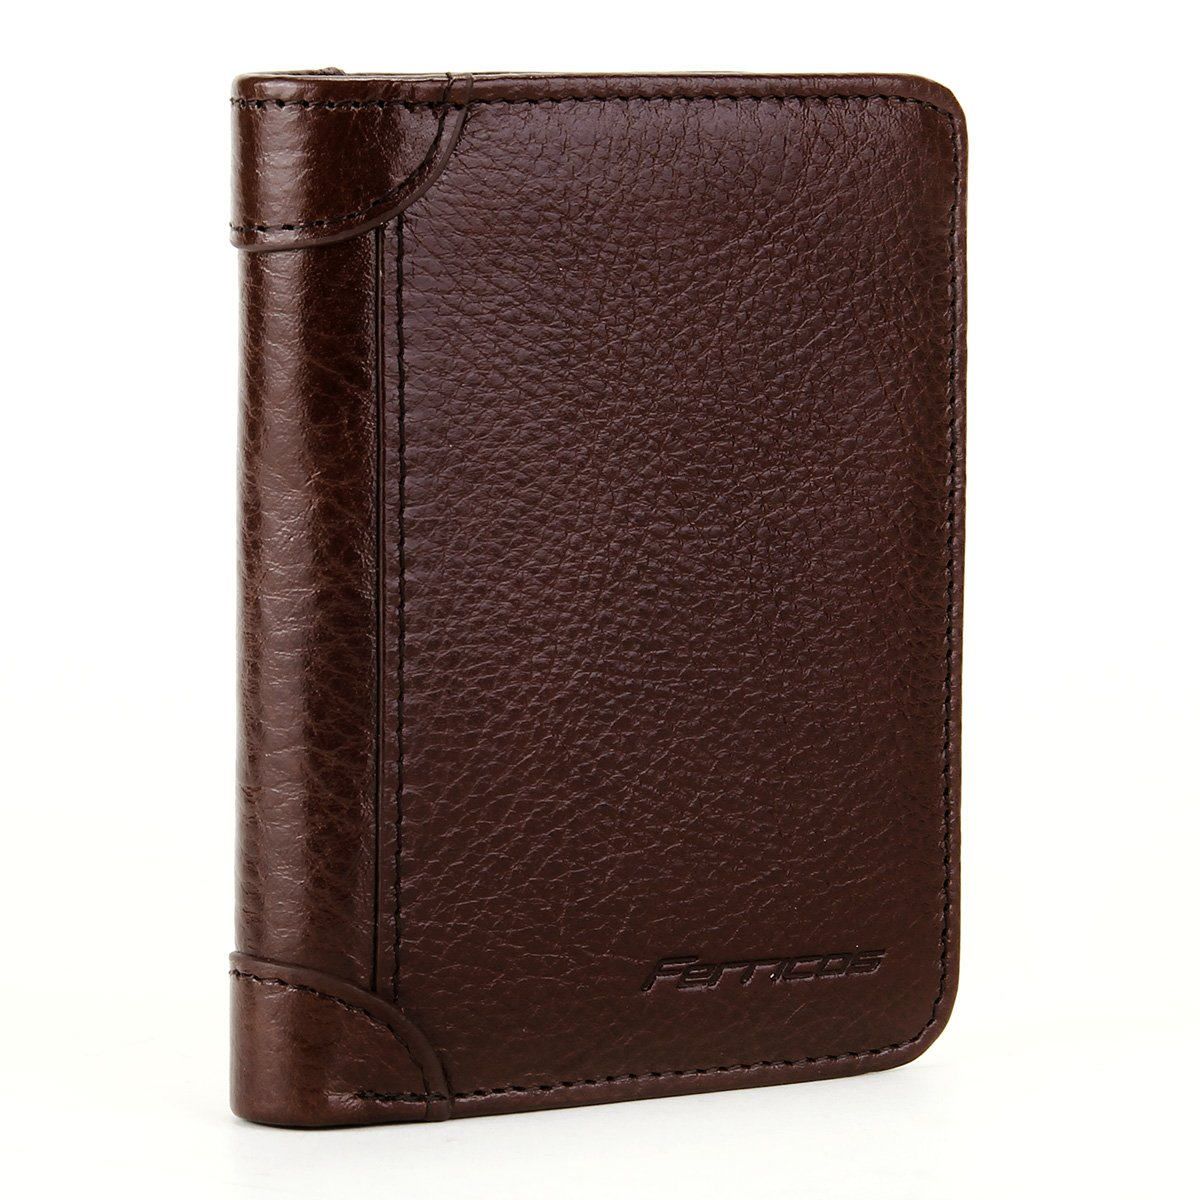 Ferricos RFID Men Cowhide Leather Portrait Short Purse Extra Capacity Trifold Inner Pocket Wallet Card Case Cash Coin Bag Money Clip ID Photo Holder Men's Gift Series 1 Coffee